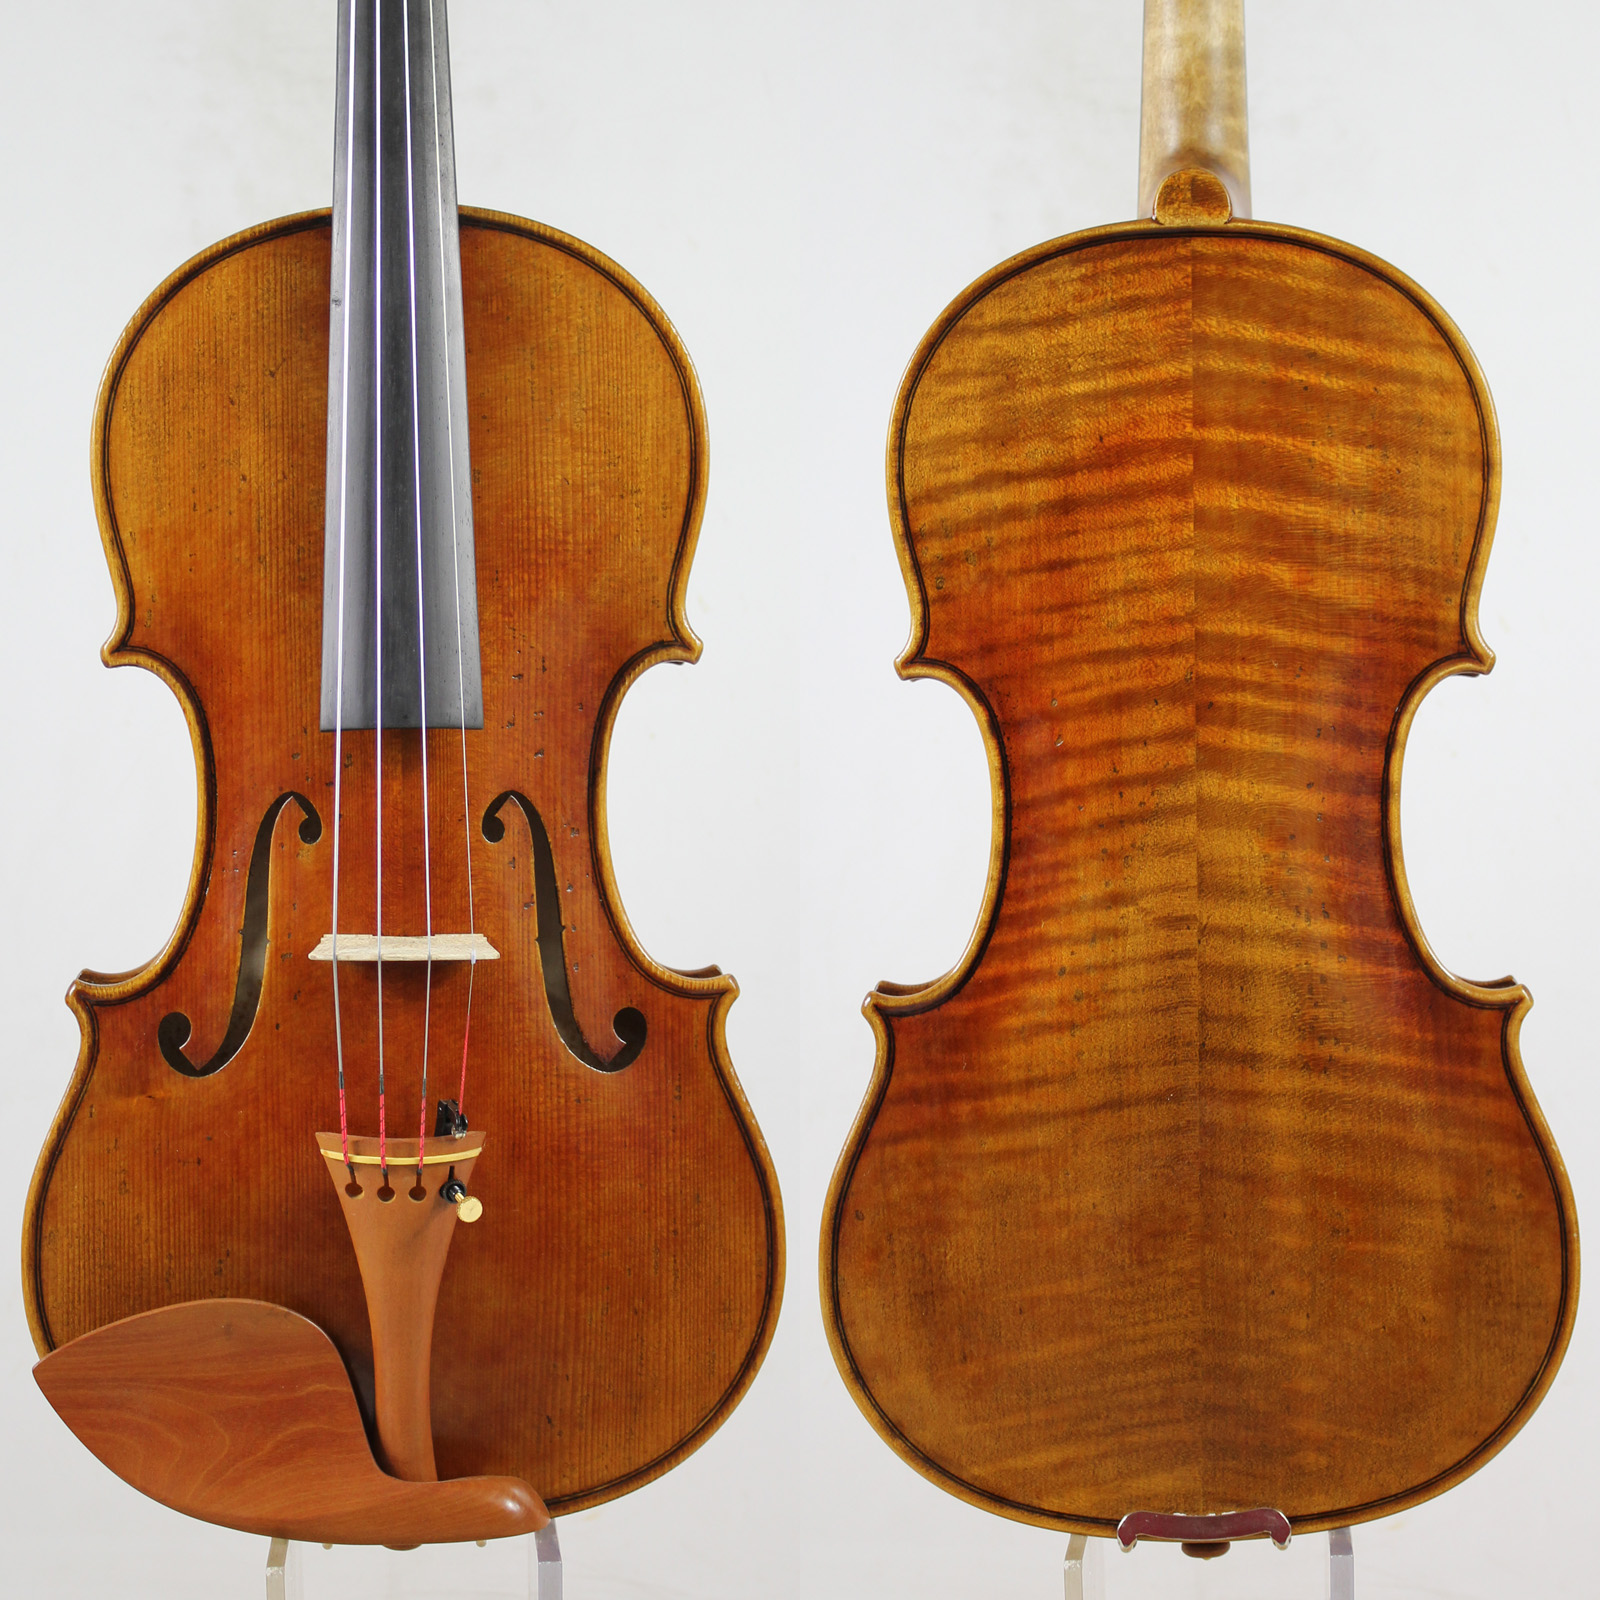 Italy Oil Varnish!Antique Oil Varnish!Copy Guarneri Violin 4/4 M5117 Powerful Clear Tone!, Free Shipping!